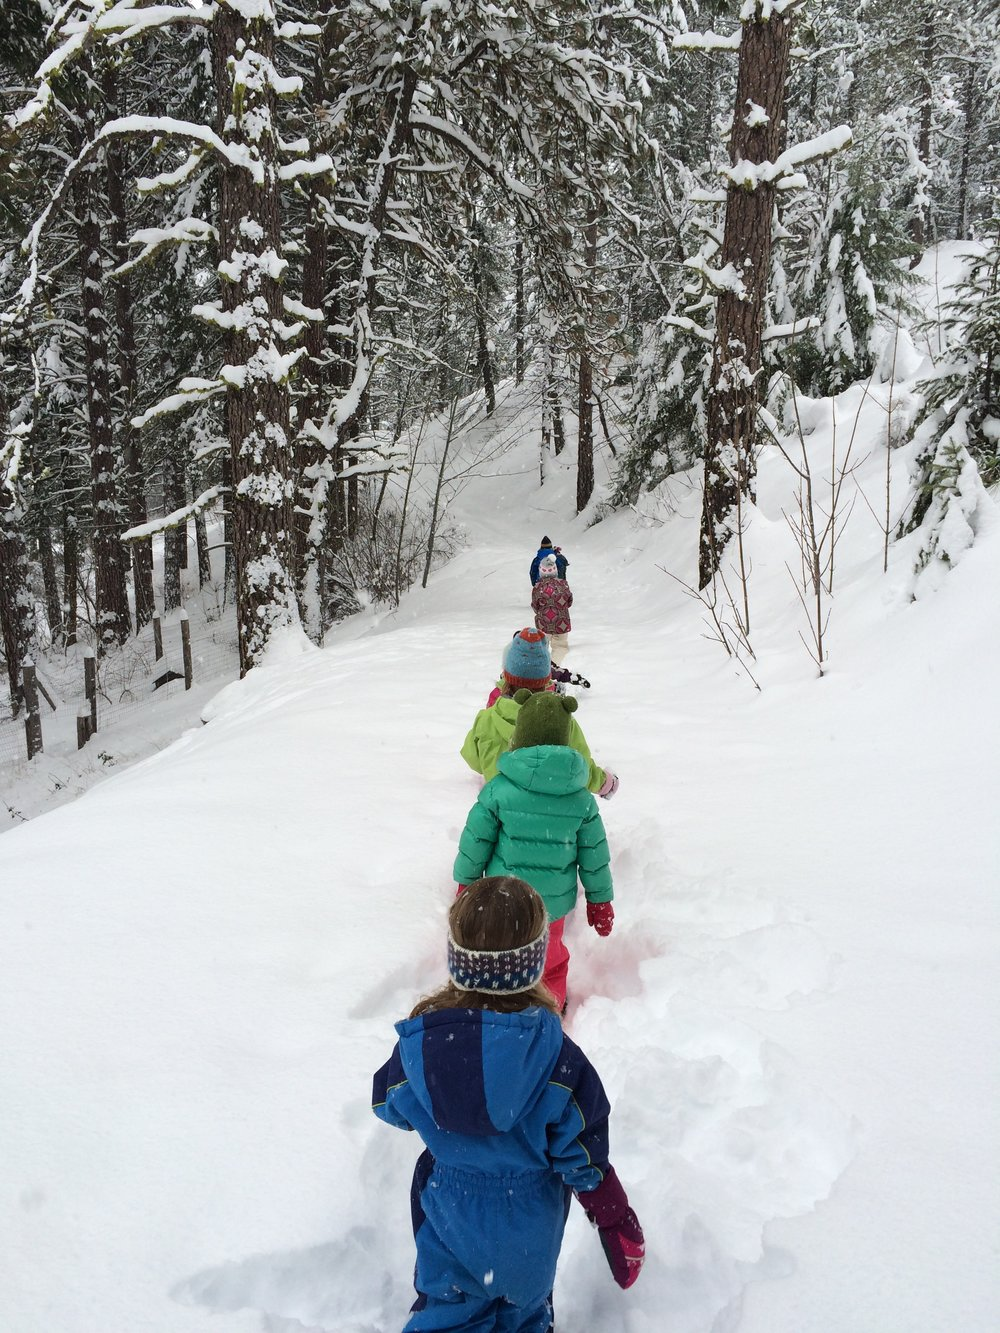 Family Explorers - free - Sign up online for any day you would like to come to Willow with an adult joining a child in class Please come 20 minutes early for class. No drop ins, registration required - you may be turned away without registration.